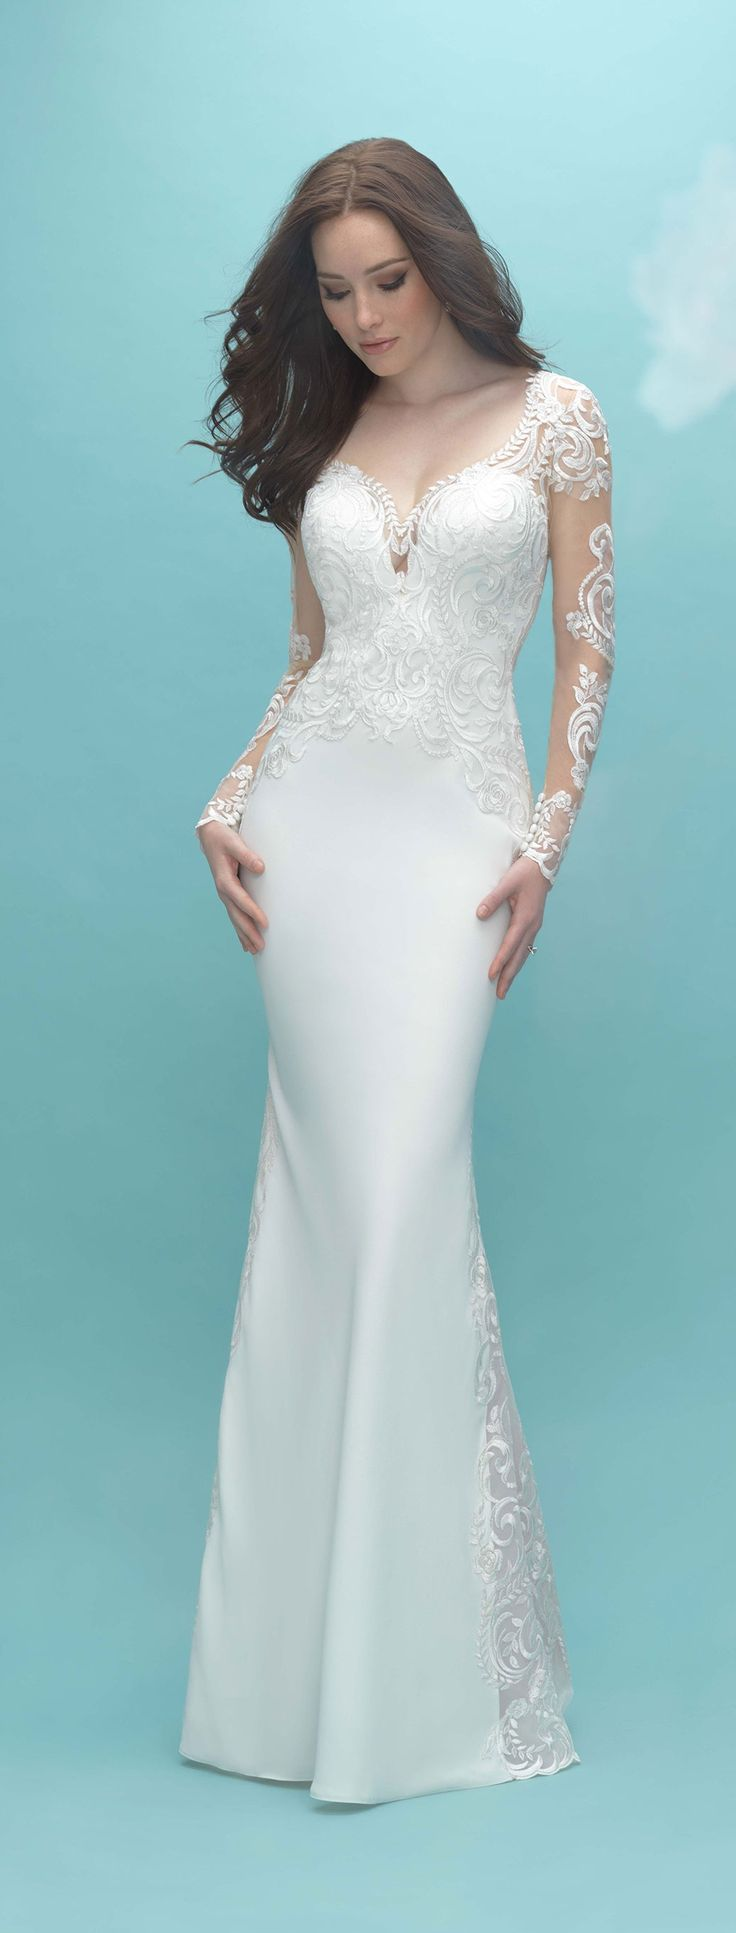 479 best Wedding Dresses - Special Day Style images on Pinterest